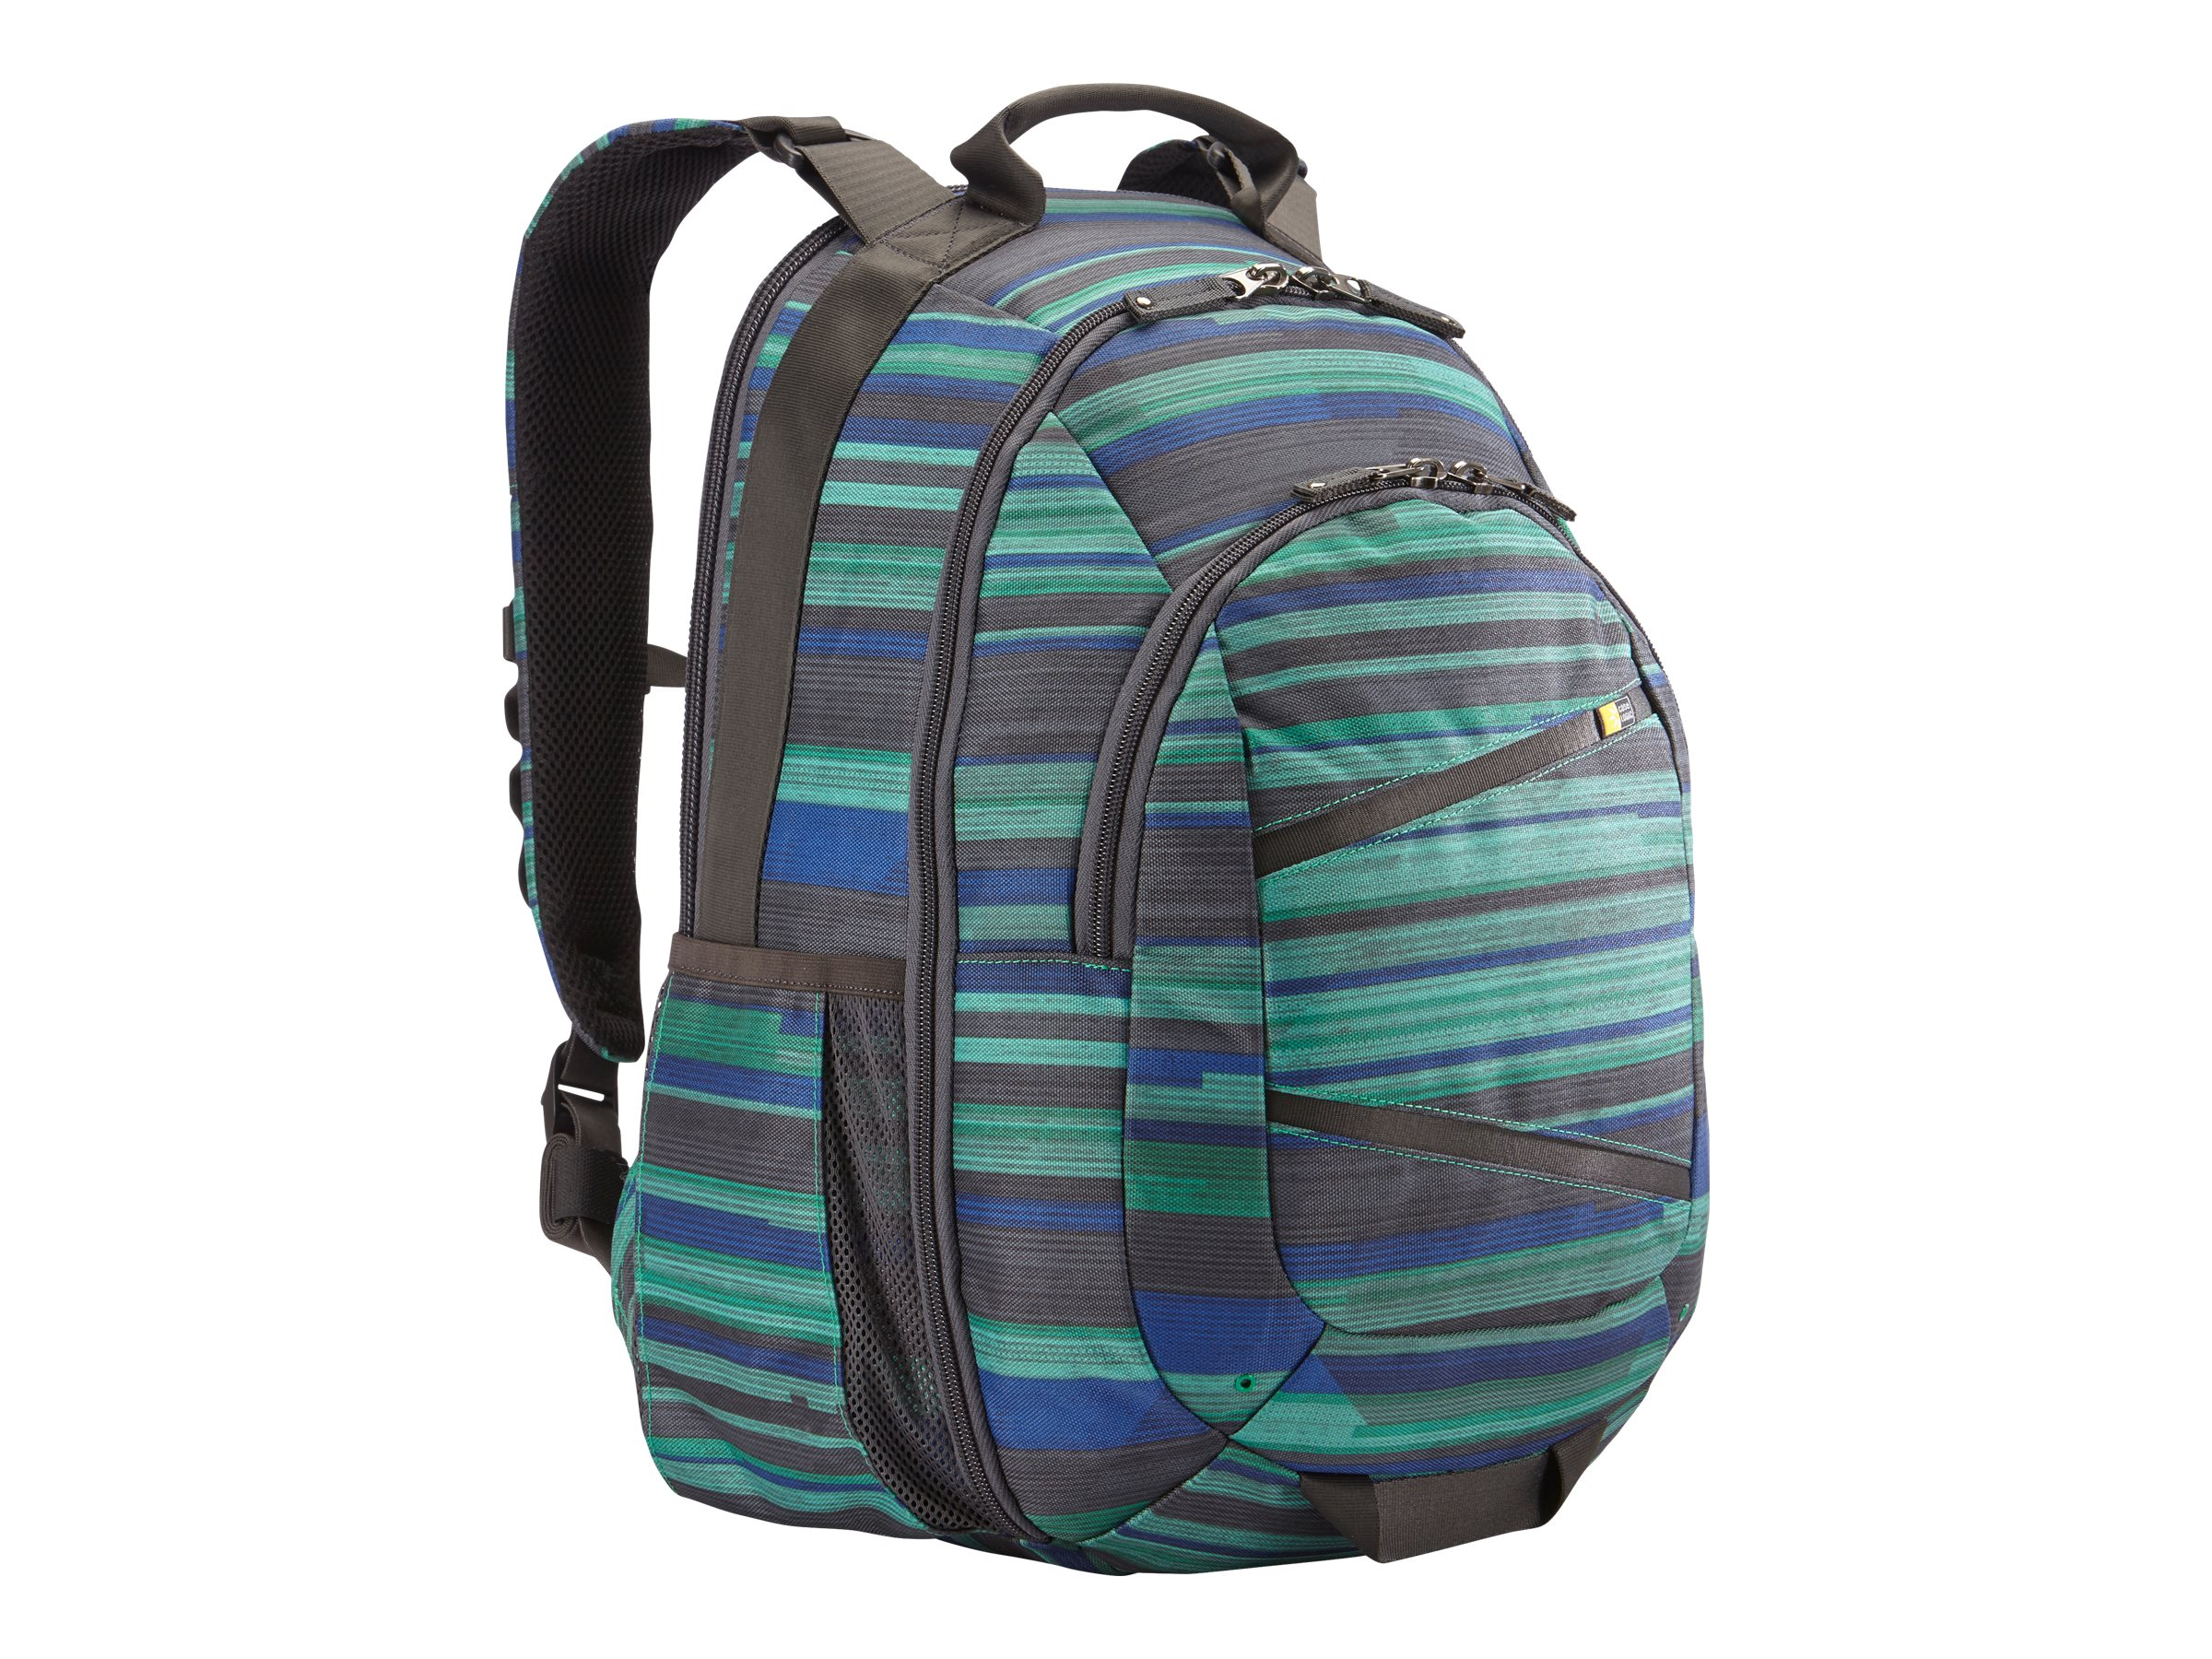 Case Logic Berkeley II Backpack for 15.6 Laptop, Tablet, Strato, BPCA-315STRATO, 22614222, Carrying Cases - Notebook